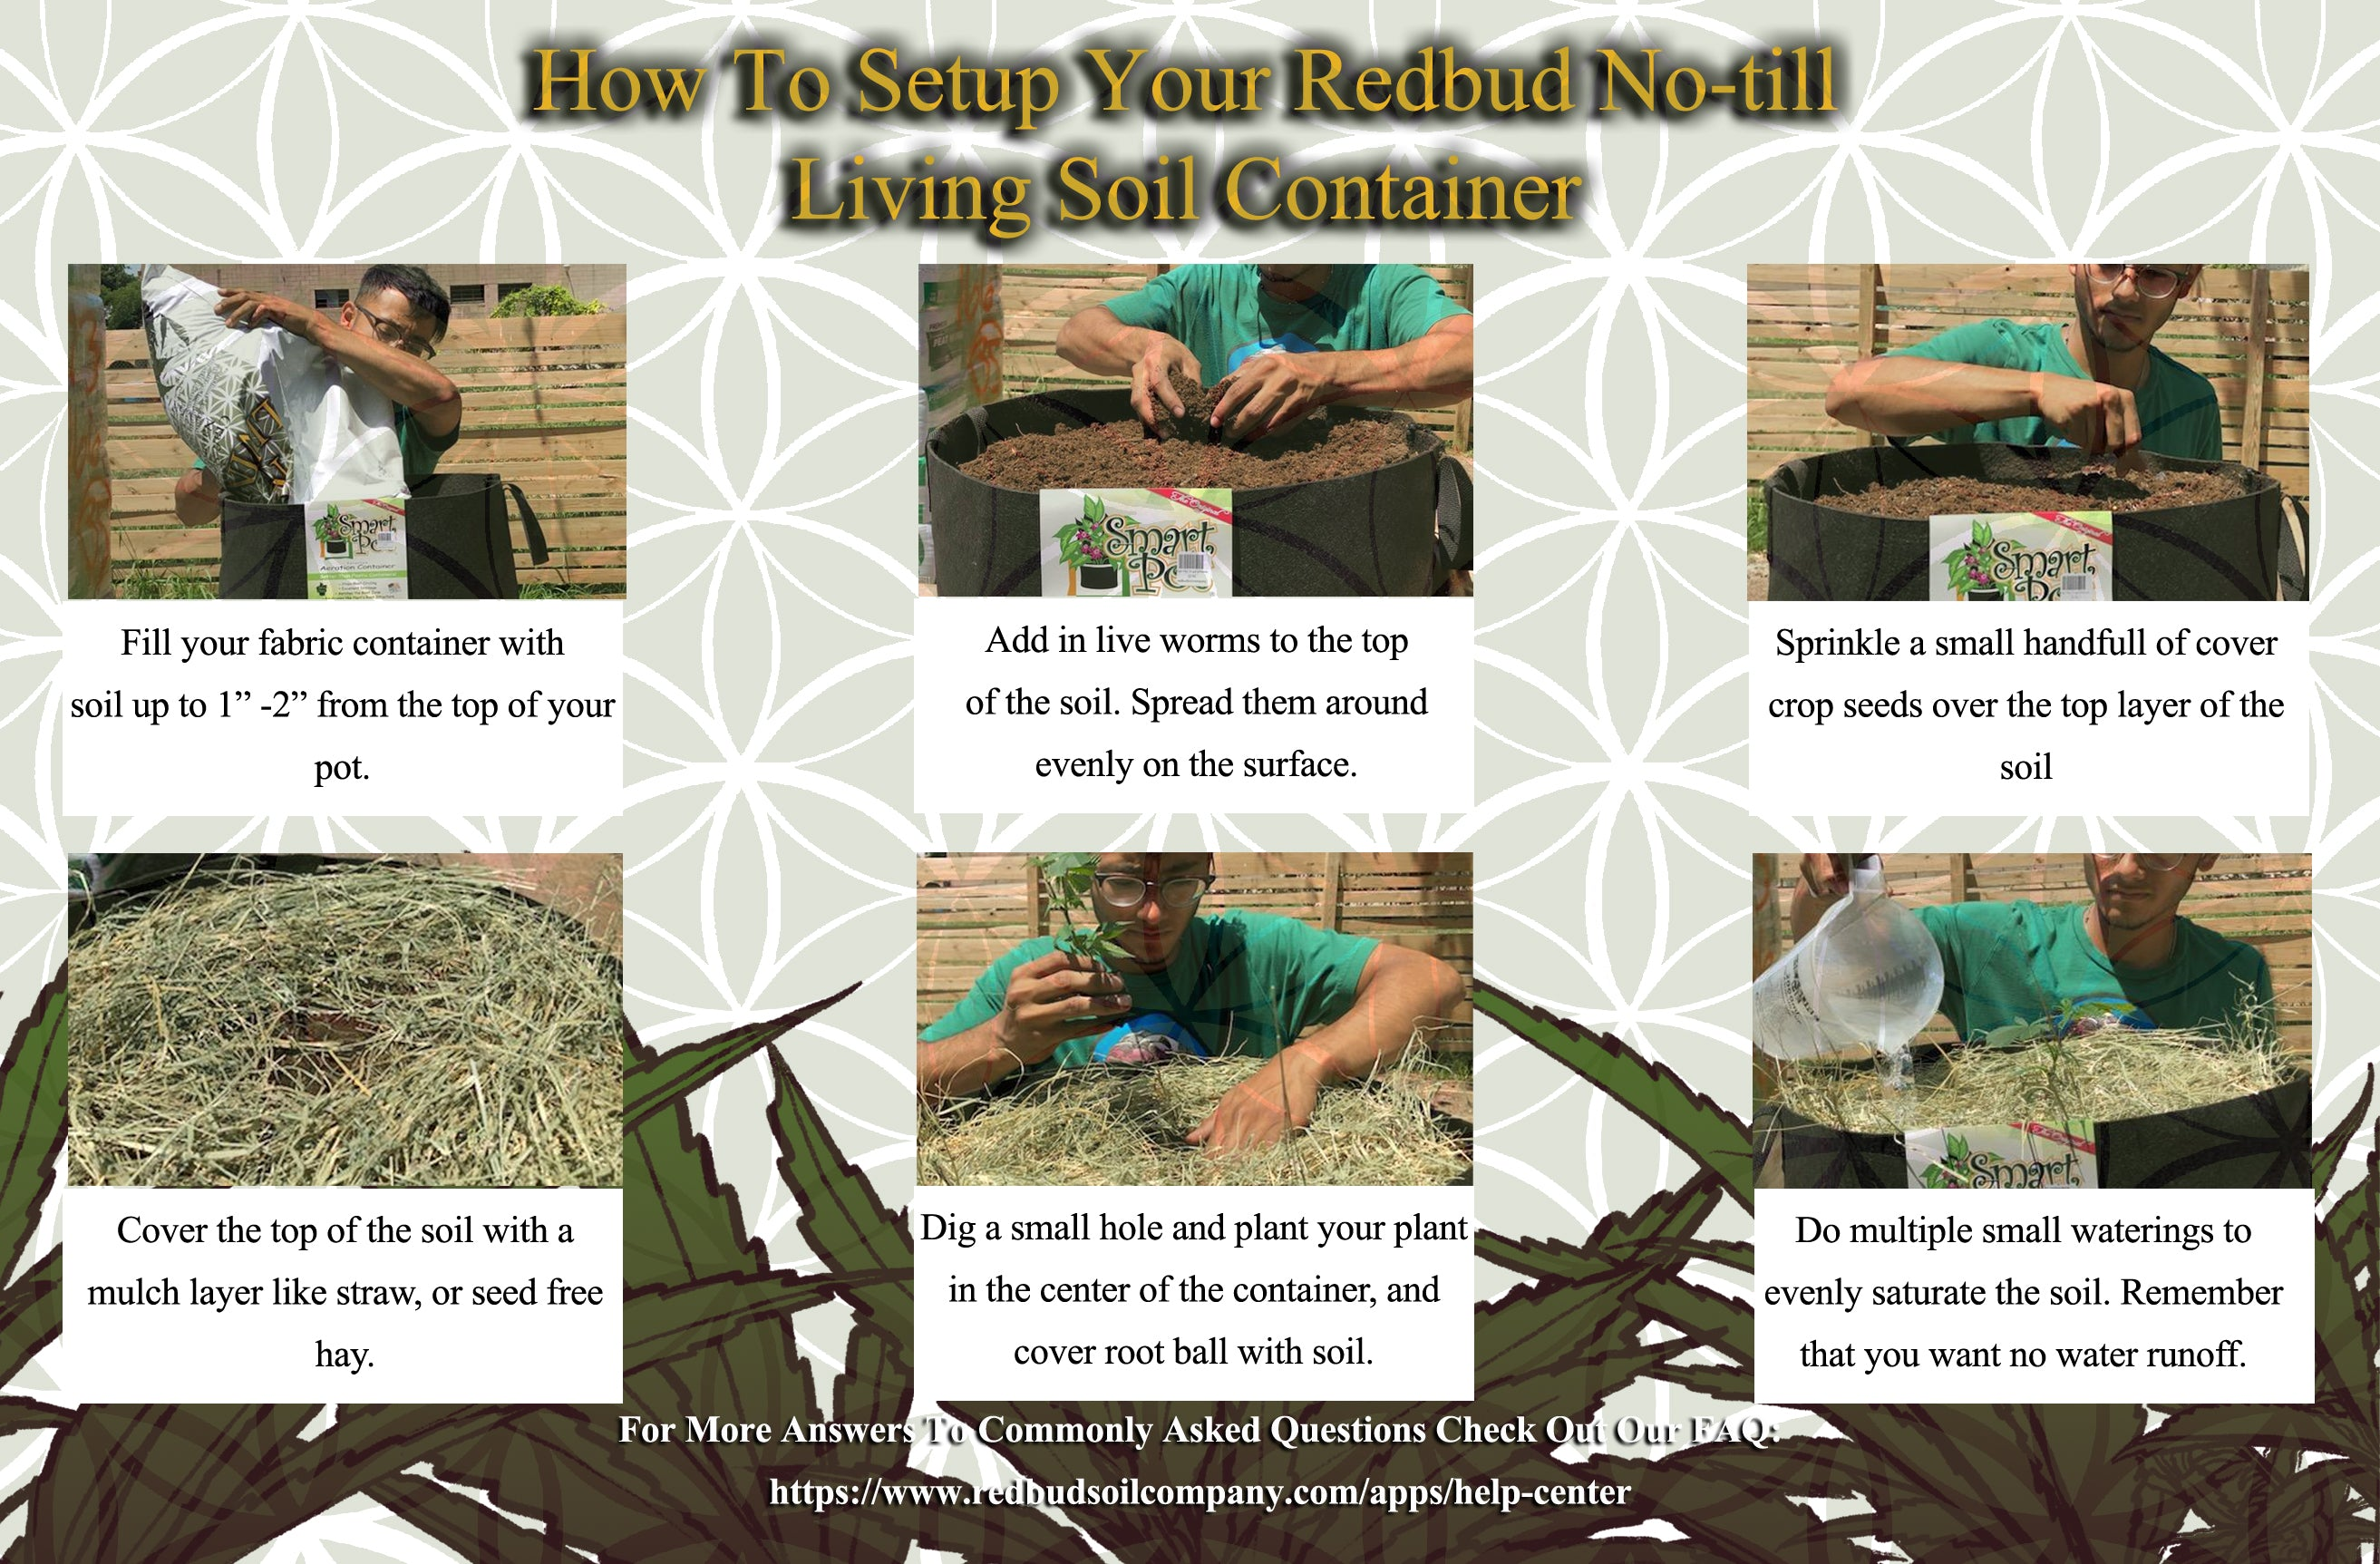 how to setup a no-till living soil container